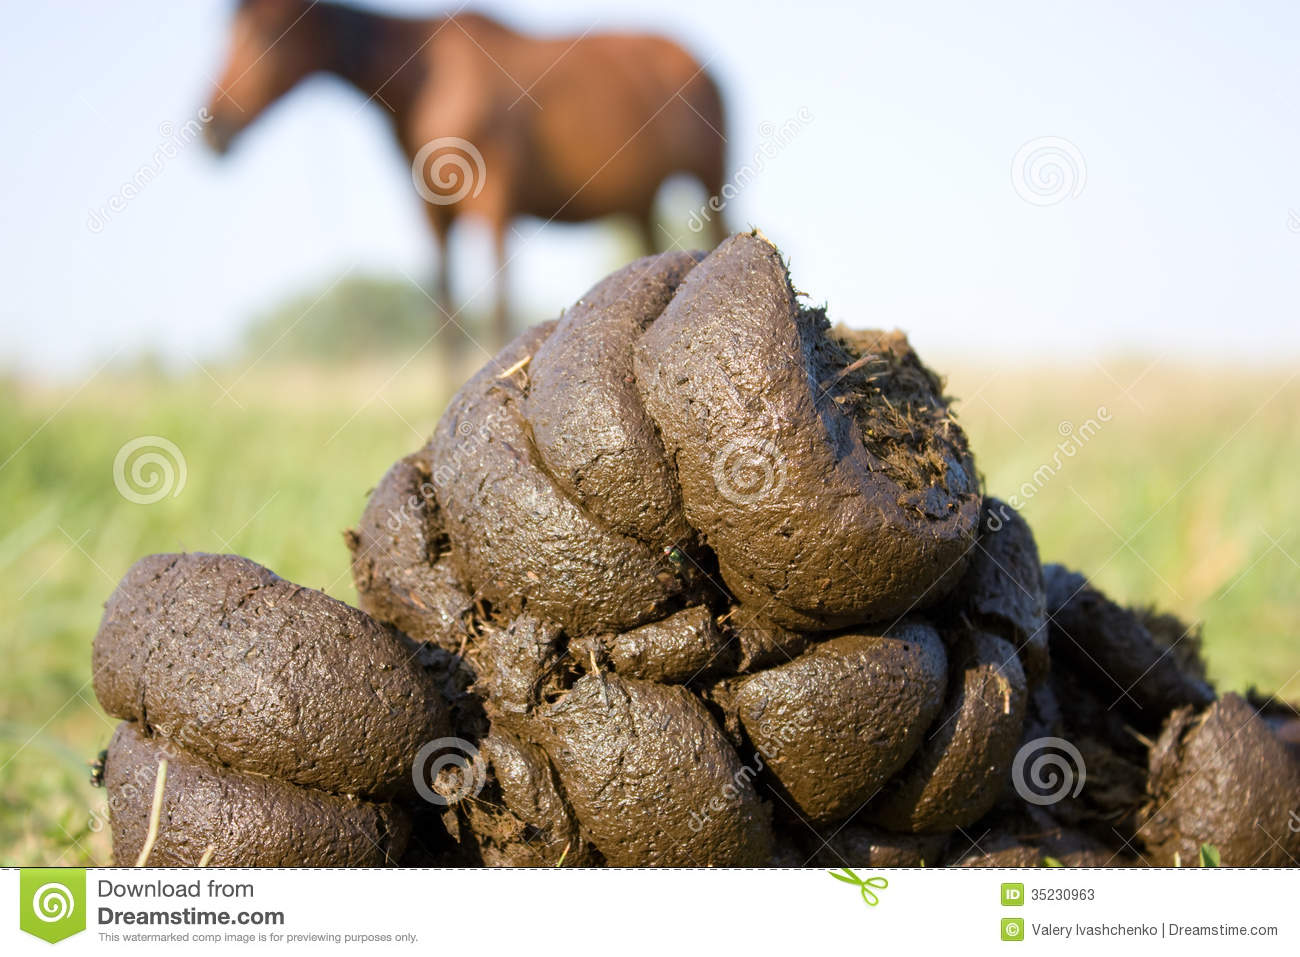 Organic Fertilizer Stock Photos - Image: 35230963